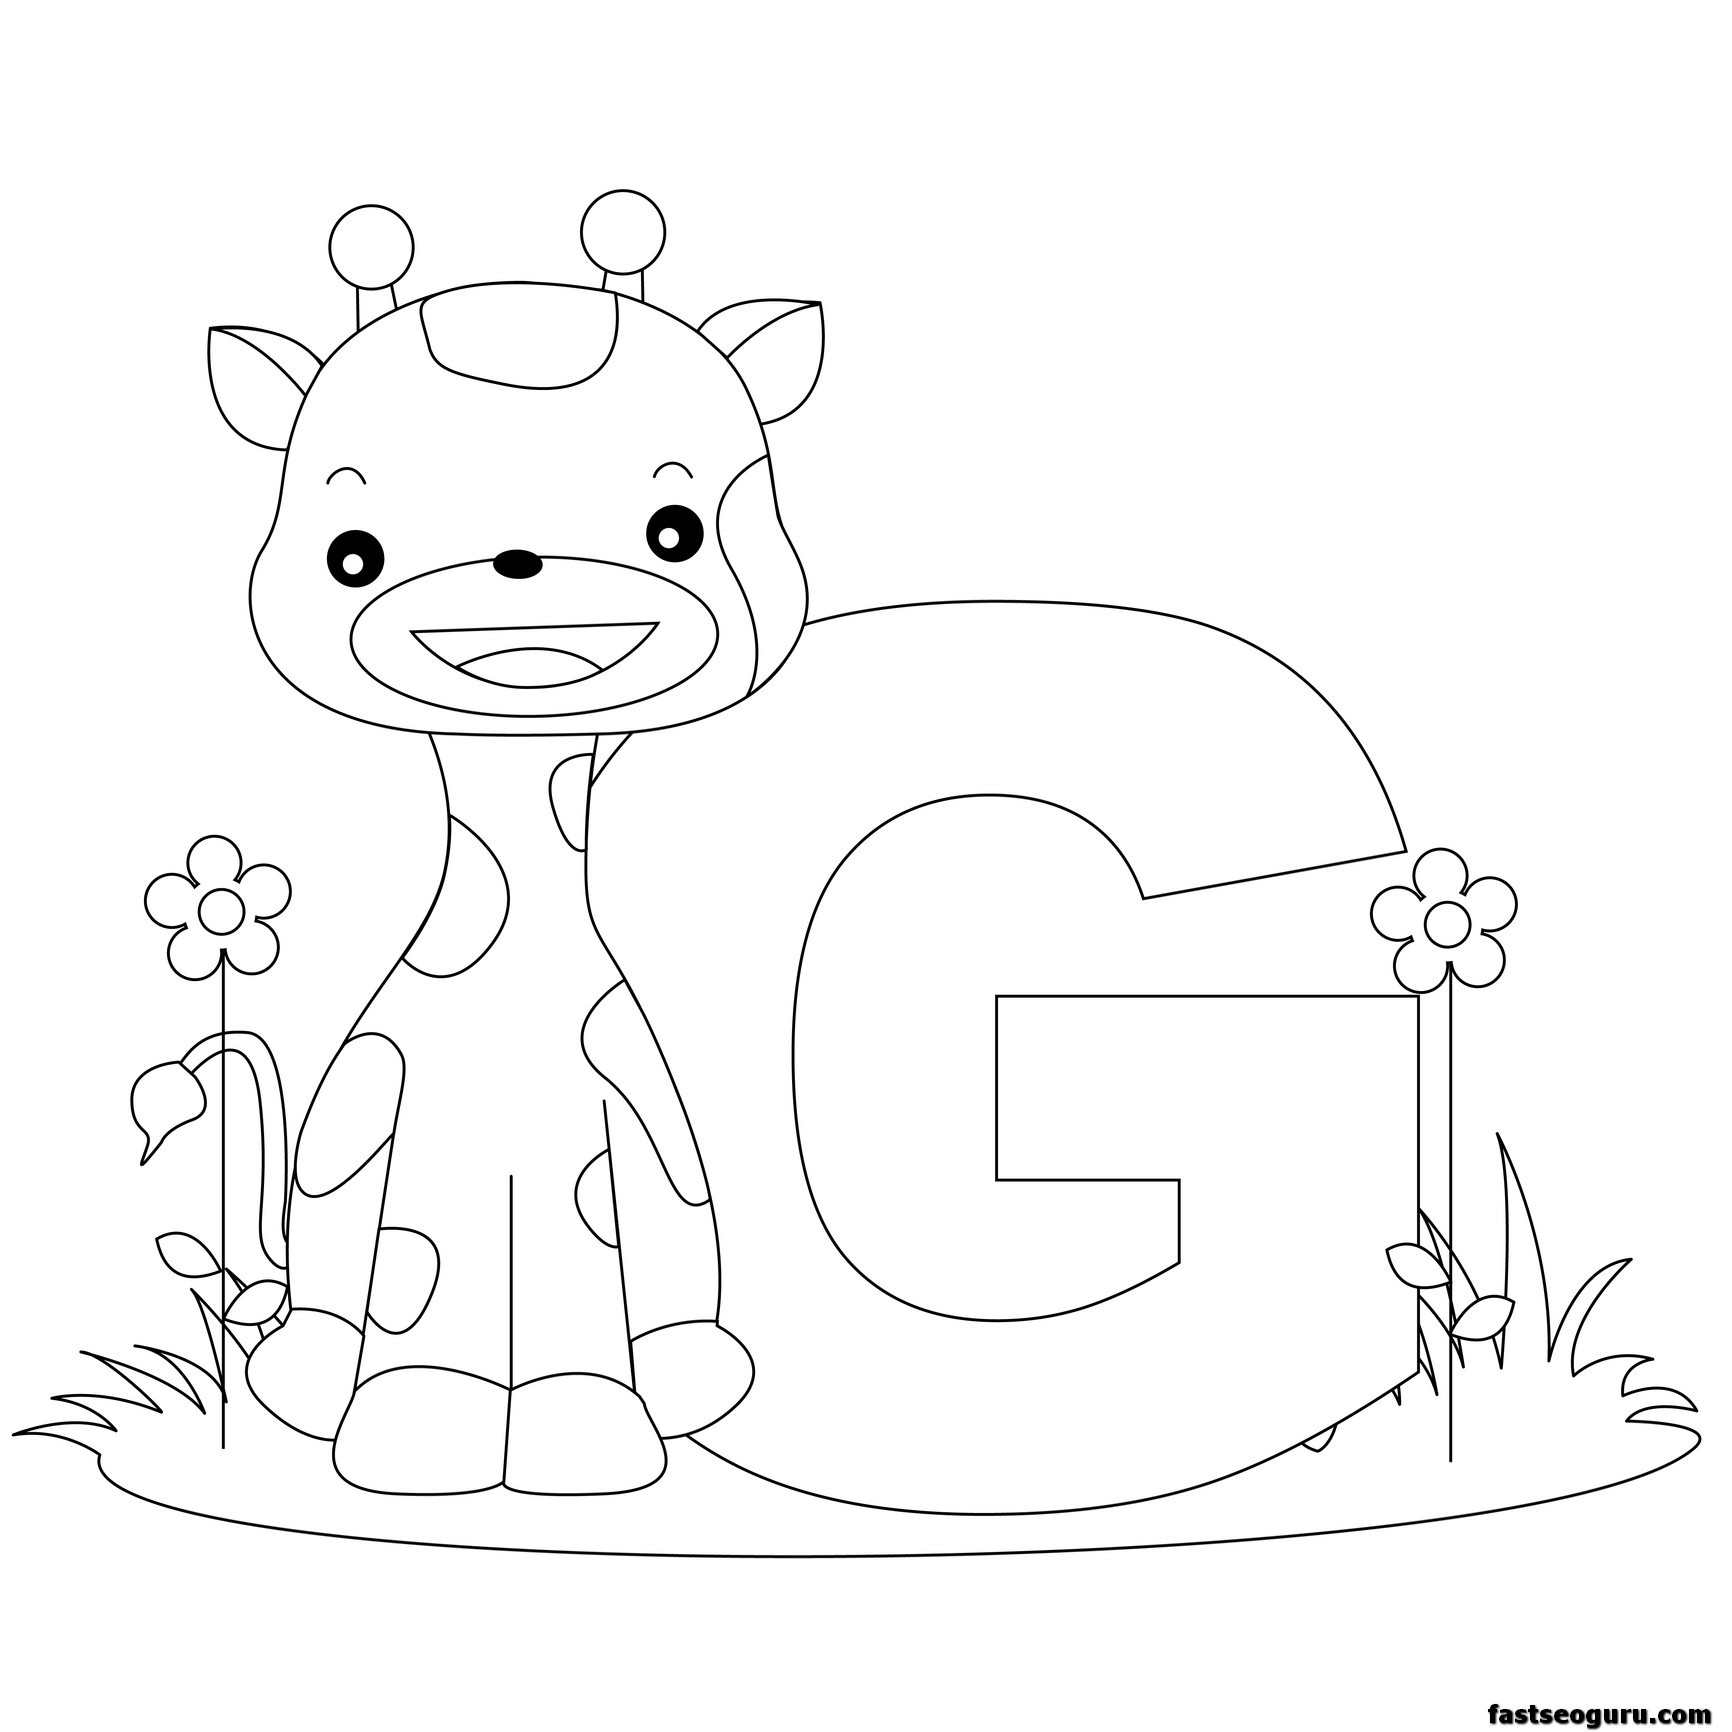 Printable Animal Alphabet Worksheets Letter G Is For